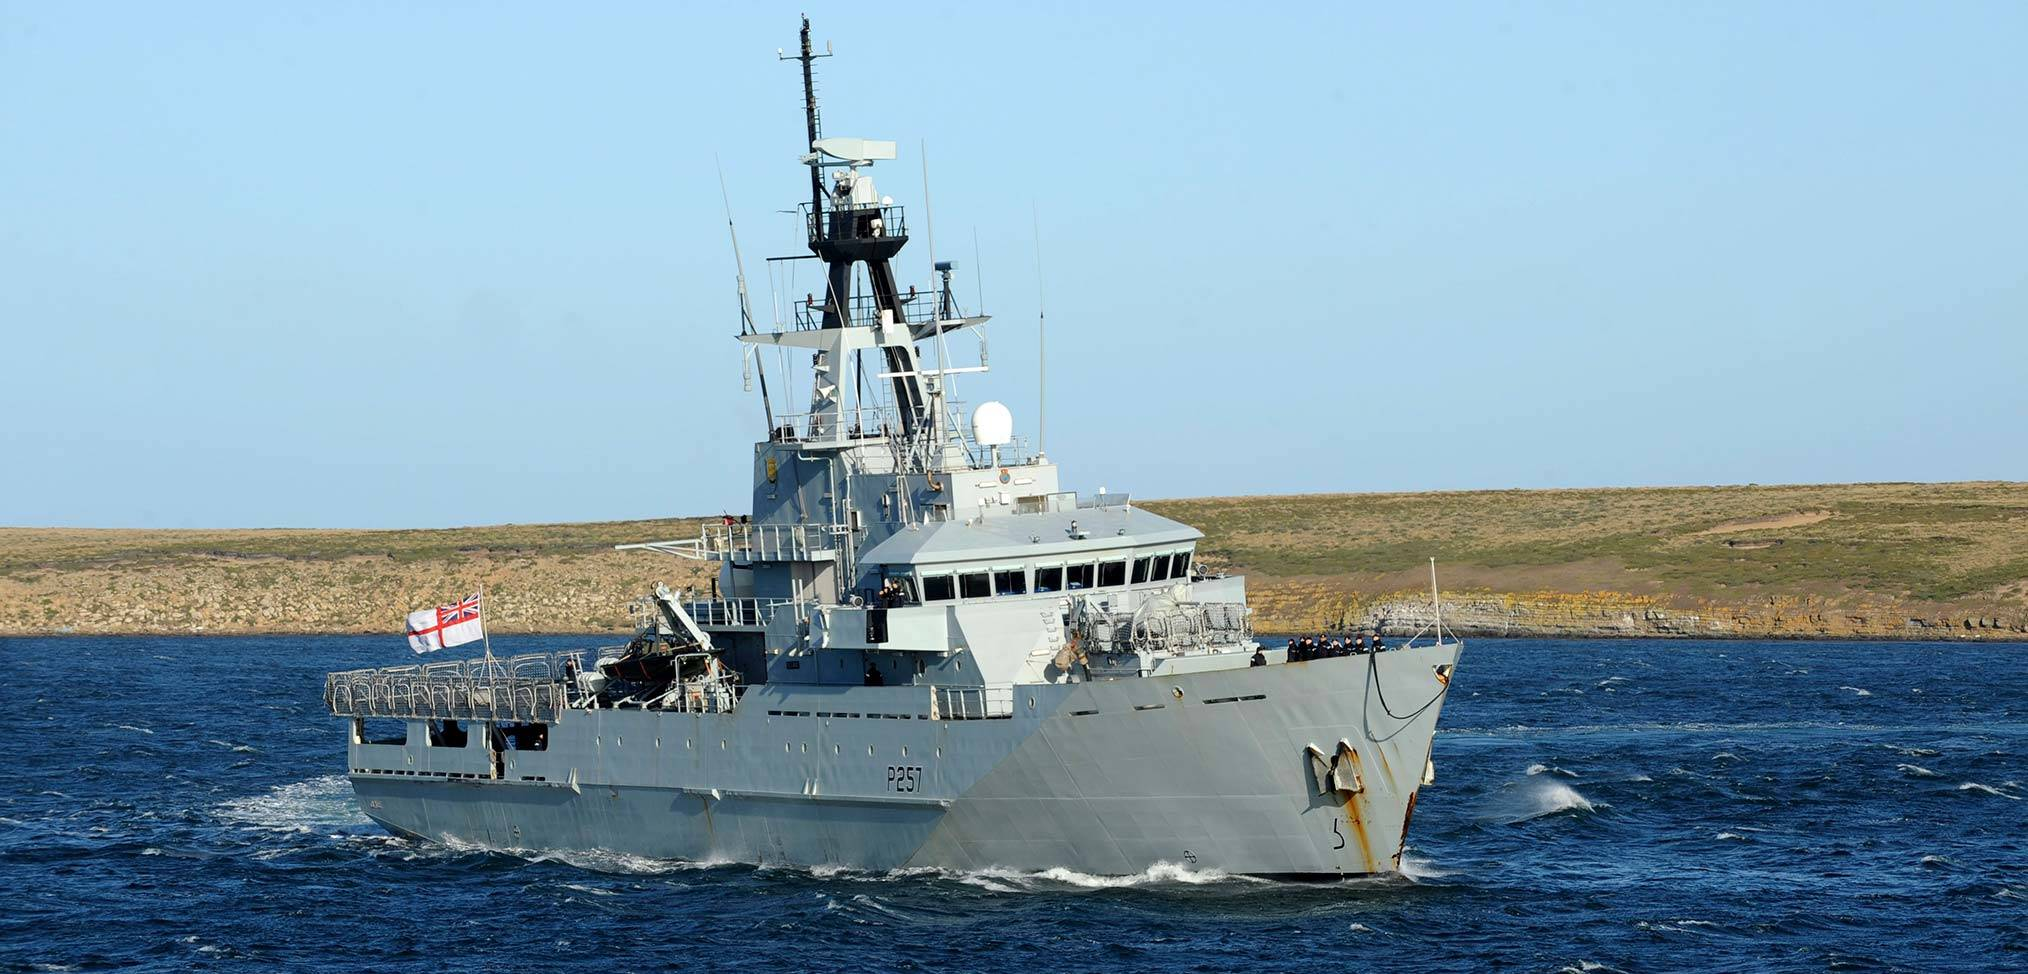 A history – the Royal Navy's Falkland Islands patrol vessels